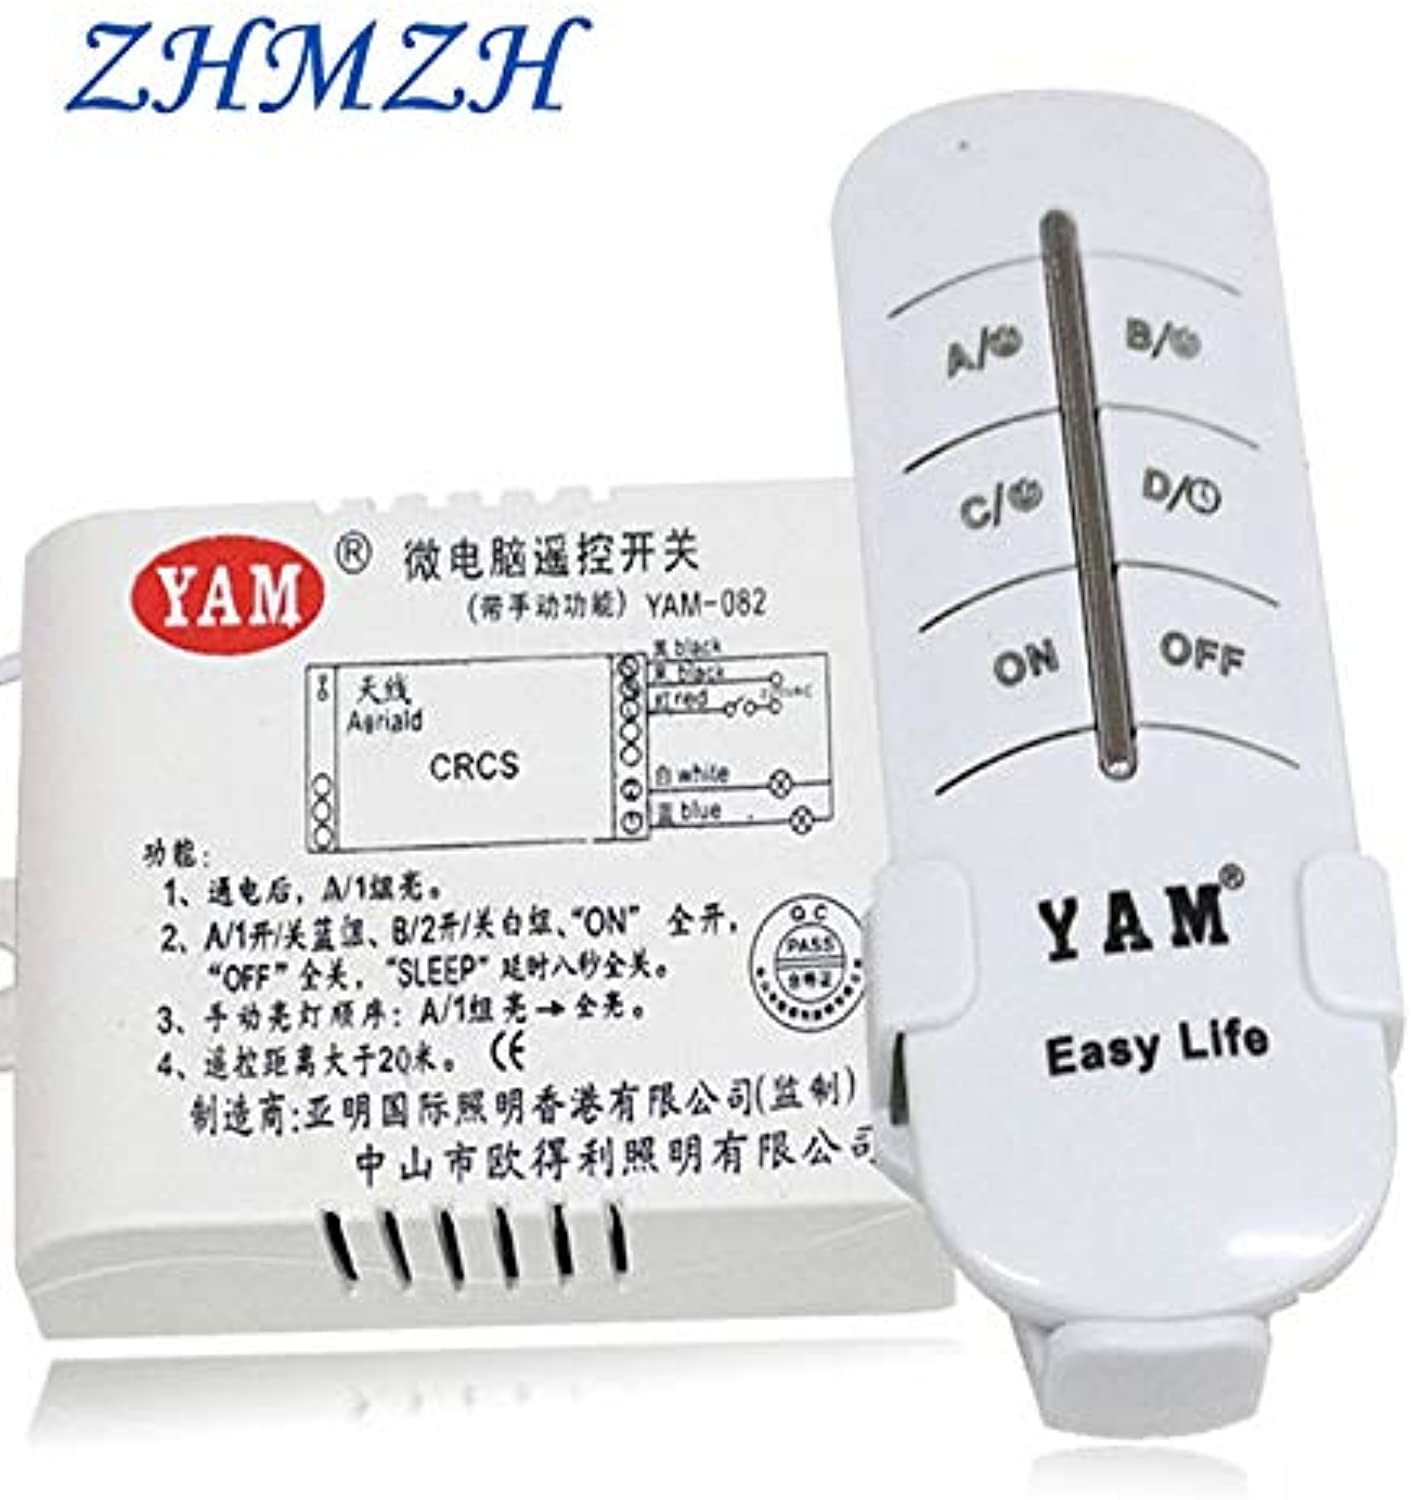 220V YAM 14 Ways Smart Wireless Remote Controlling Switch RPWM ThroughWall Access LED Lamp Remote Control 2050m  (color  3 Way, Voltage  220V)